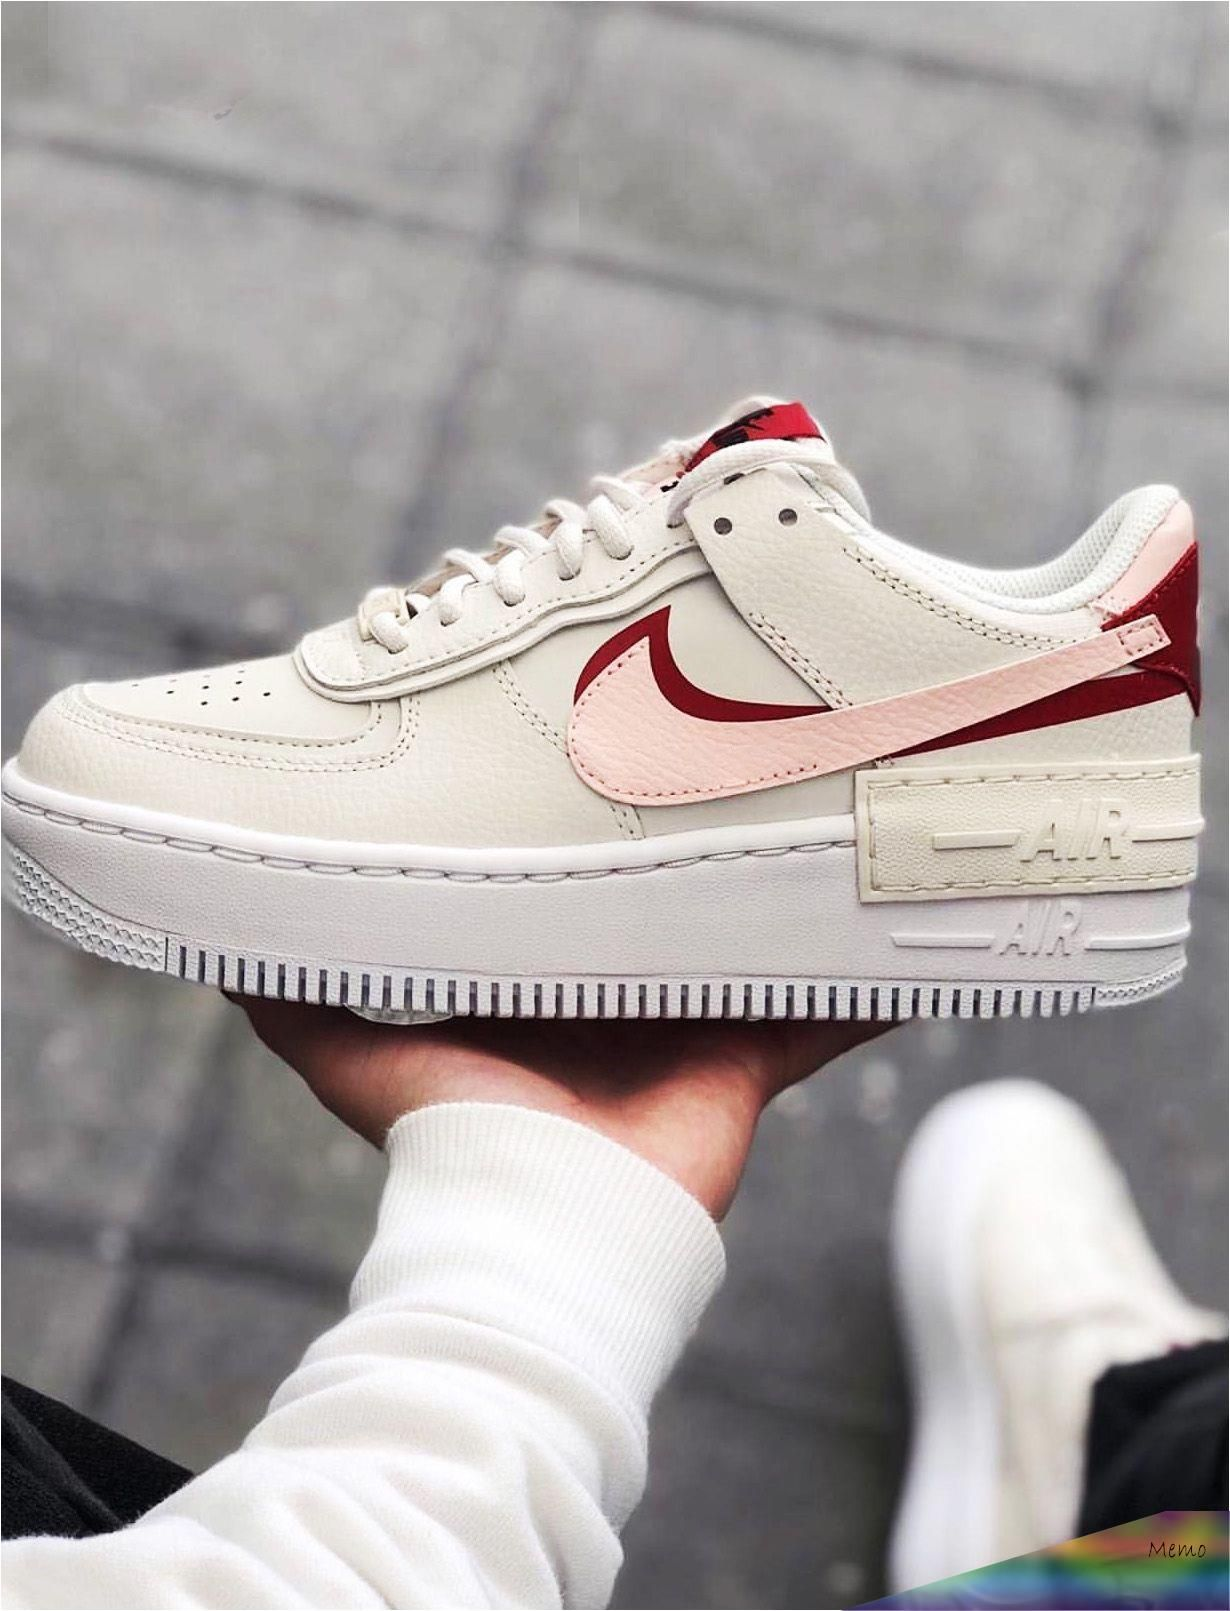 Jan 13 2020 Si J A C Prouve Des Sentiments Pour Une Paire De Baskets Je Crois Bien Que Oui A I A I In 2020 Casual Shoes Outfit Nike Air Shoes White Nike Shoes